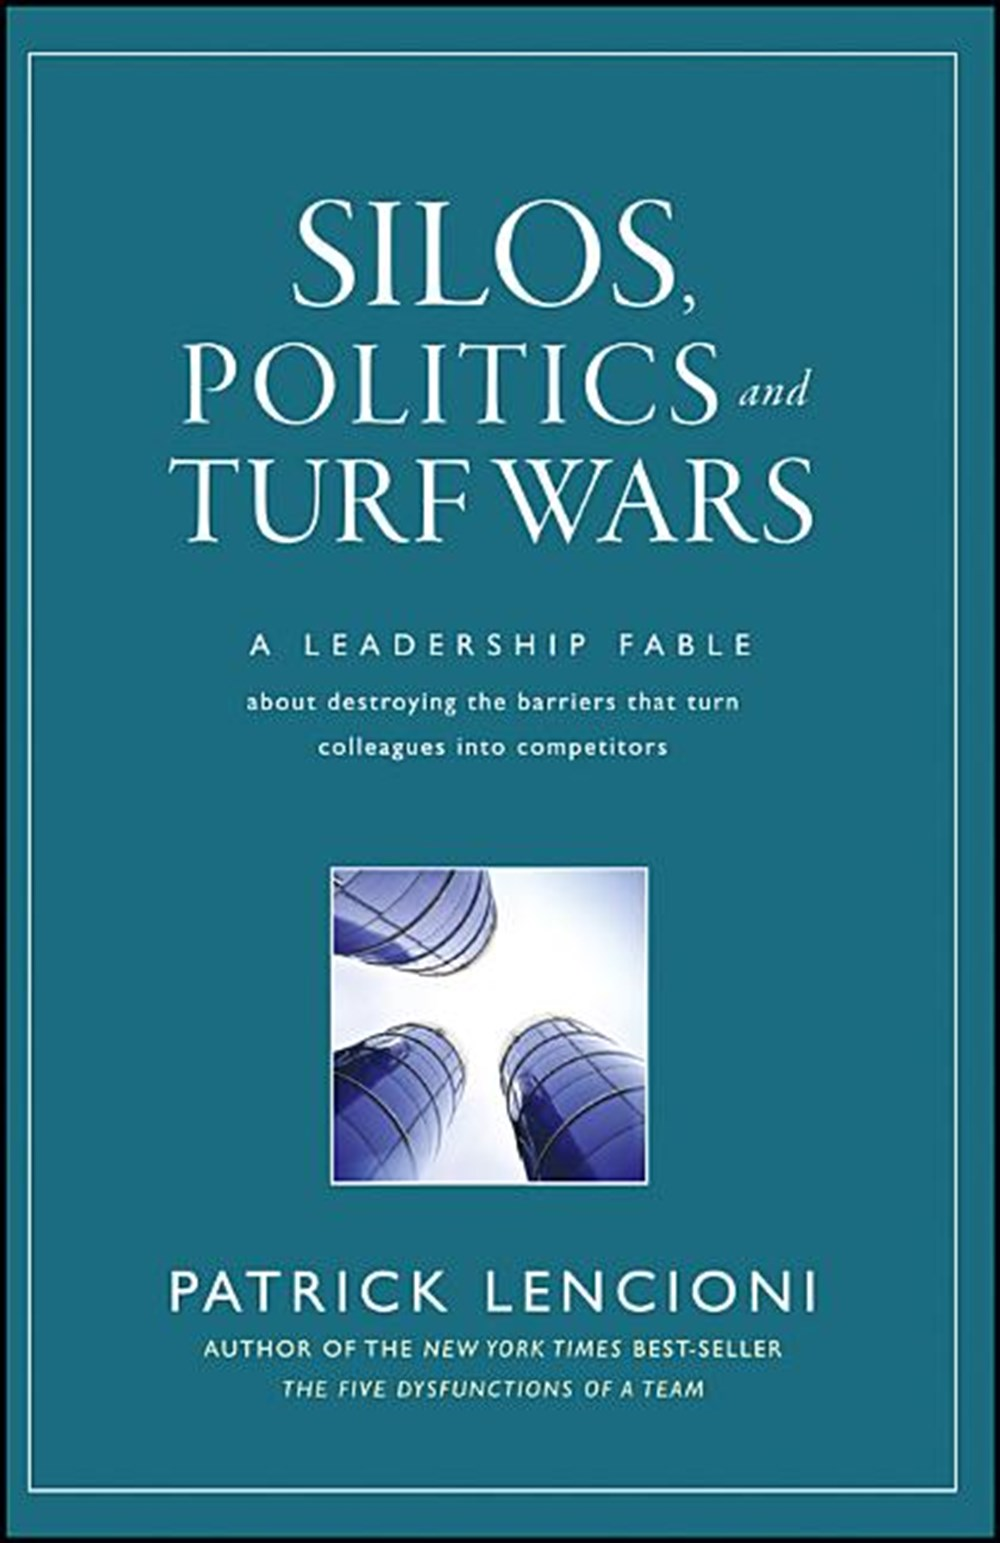 Silos, Politics, and Turf Wars A Leadership Fable about Destroying the Barriers That Turn Colleagues